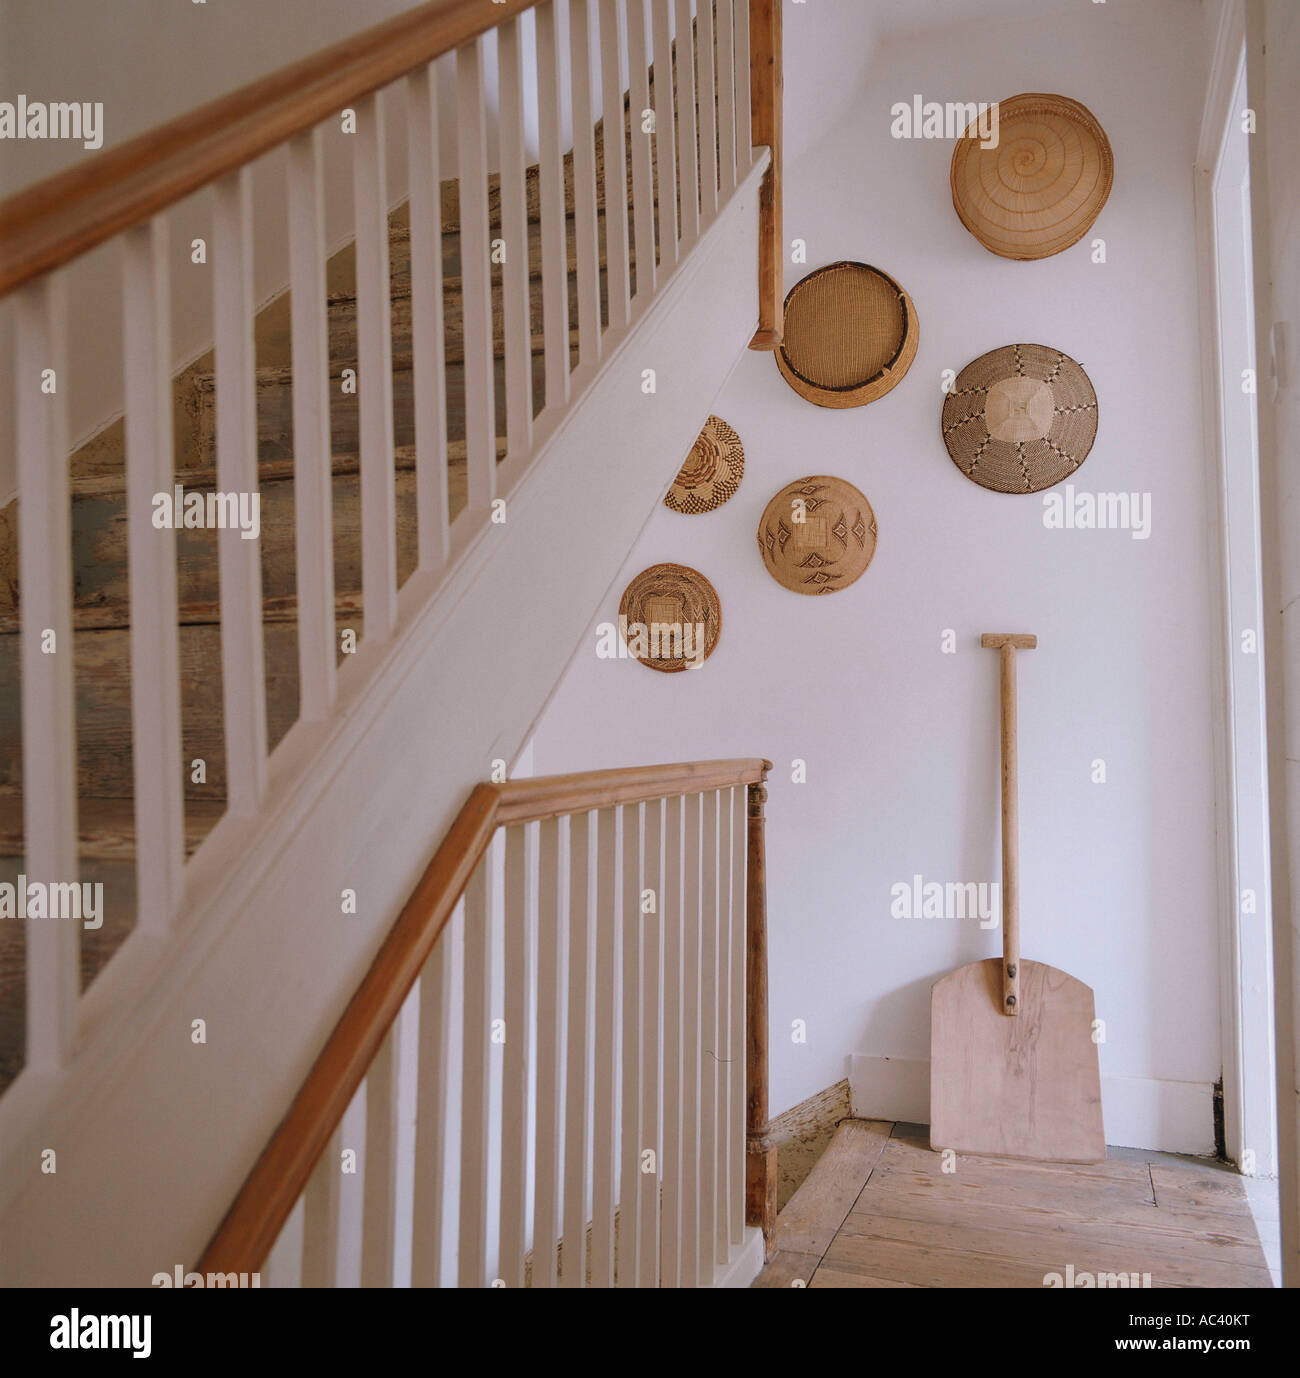 Staircase and landing with shovel in 18th century English  townhouse restoration - Stock Image